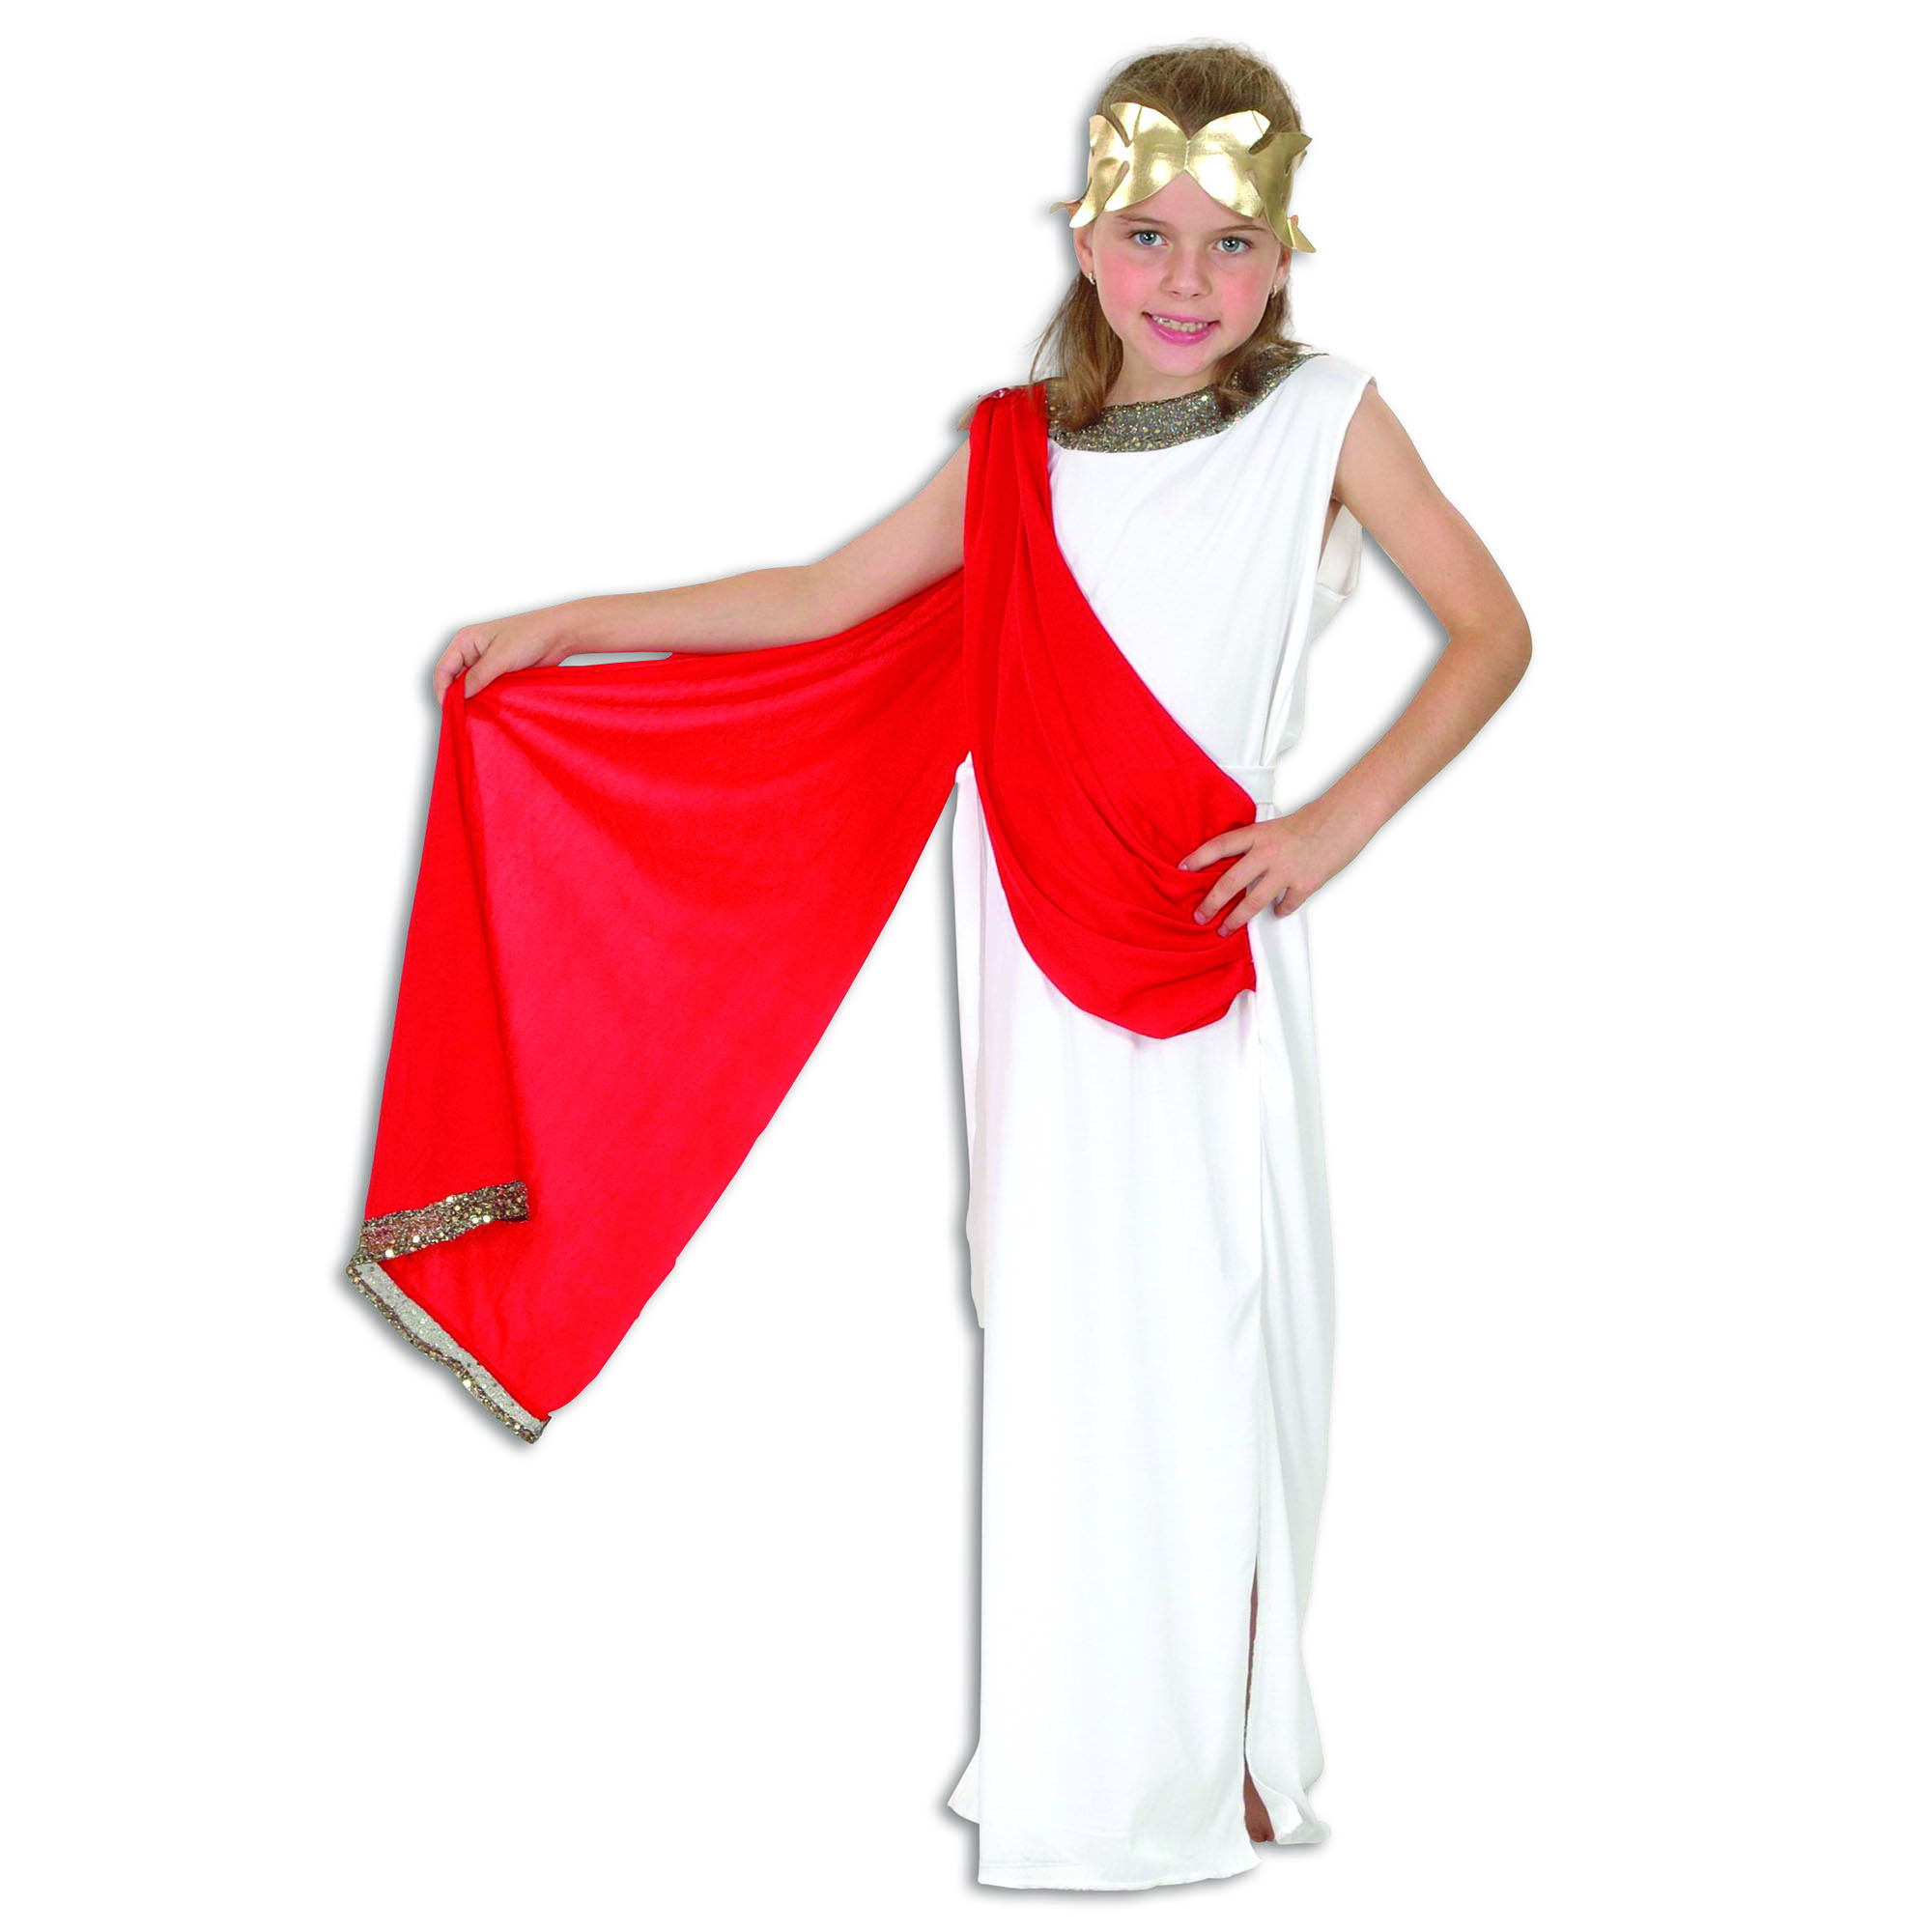 Girls Roman Costume, Goddess Childs Fancy Dress